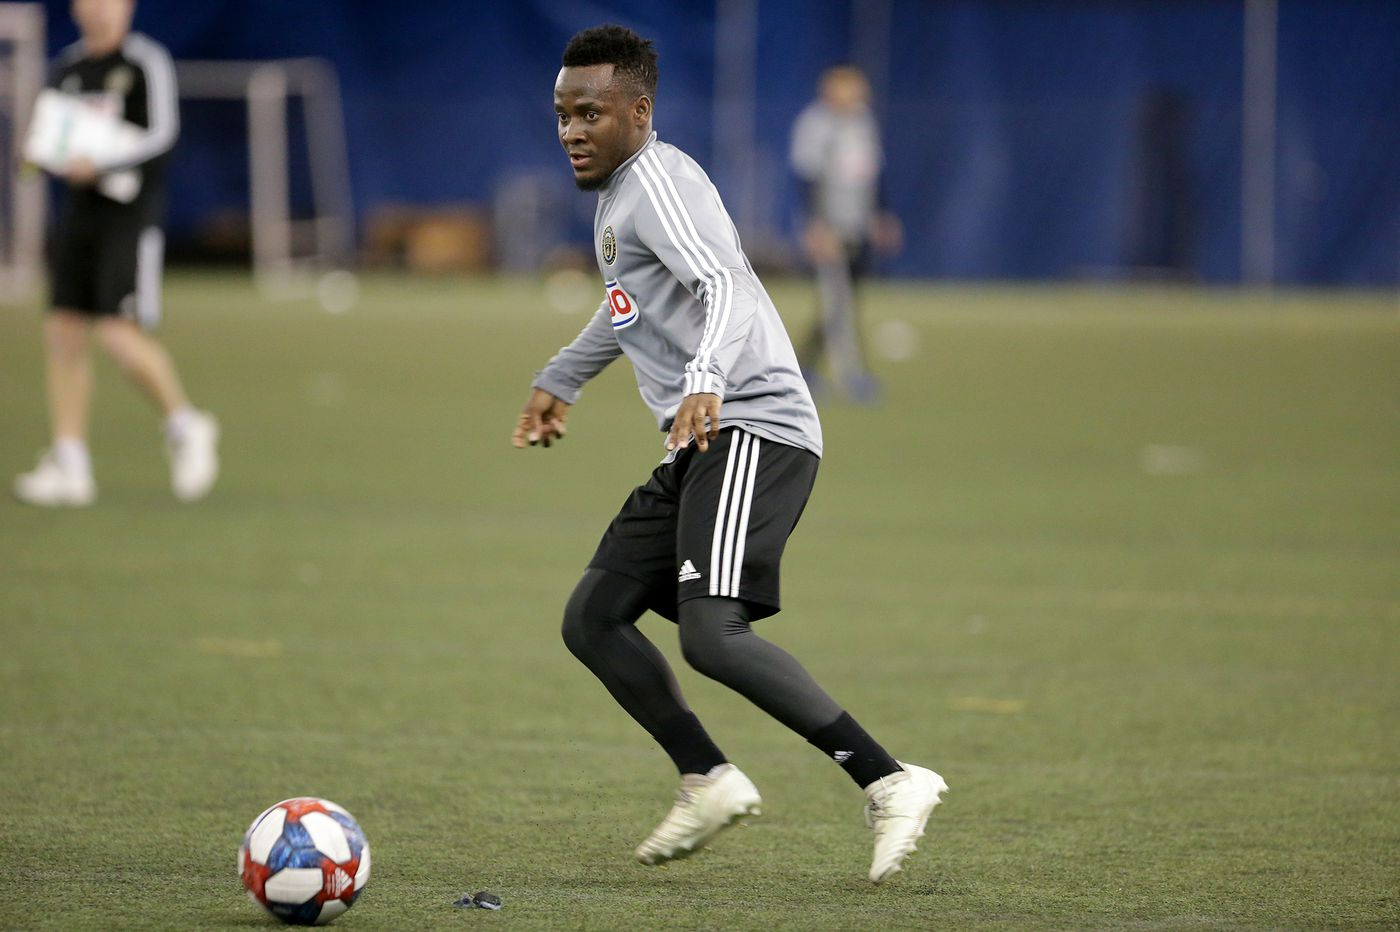 Union's David Accam wants to quiet critics as he finally puts injuries behind him